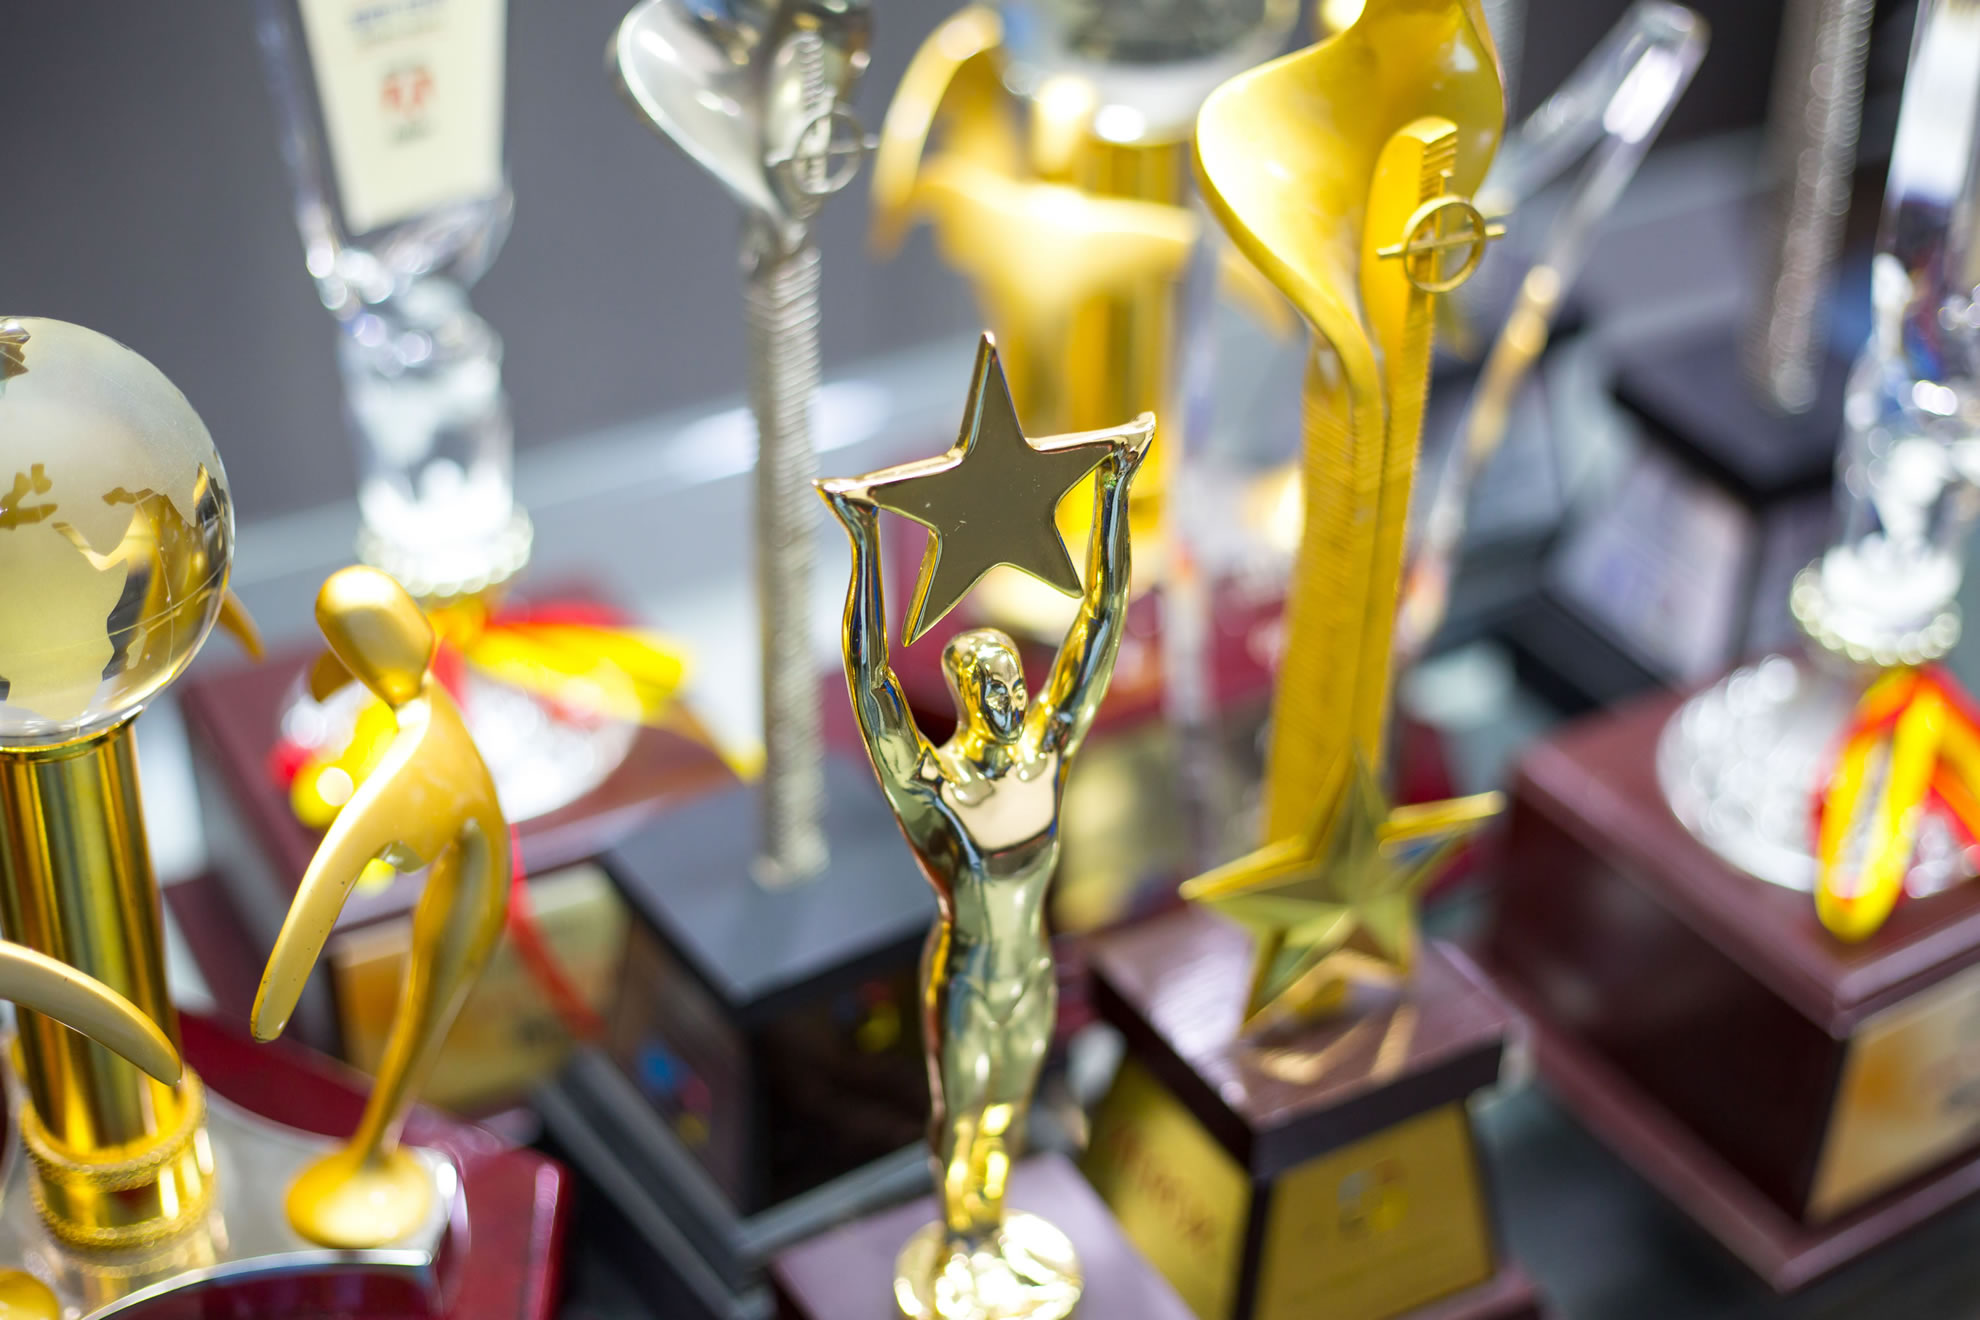 Image-3-Multi-Award-Infrastructure-and-Team